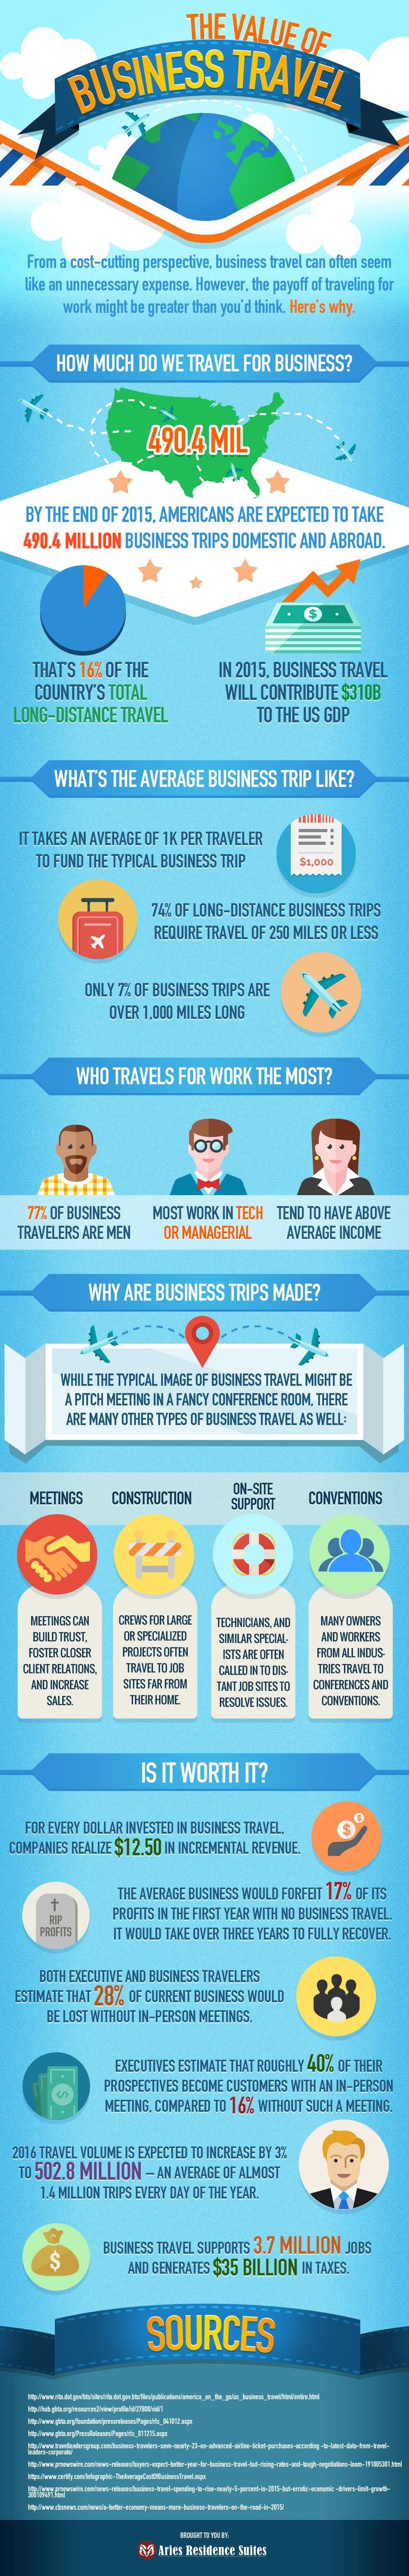 The Value of Business Travel